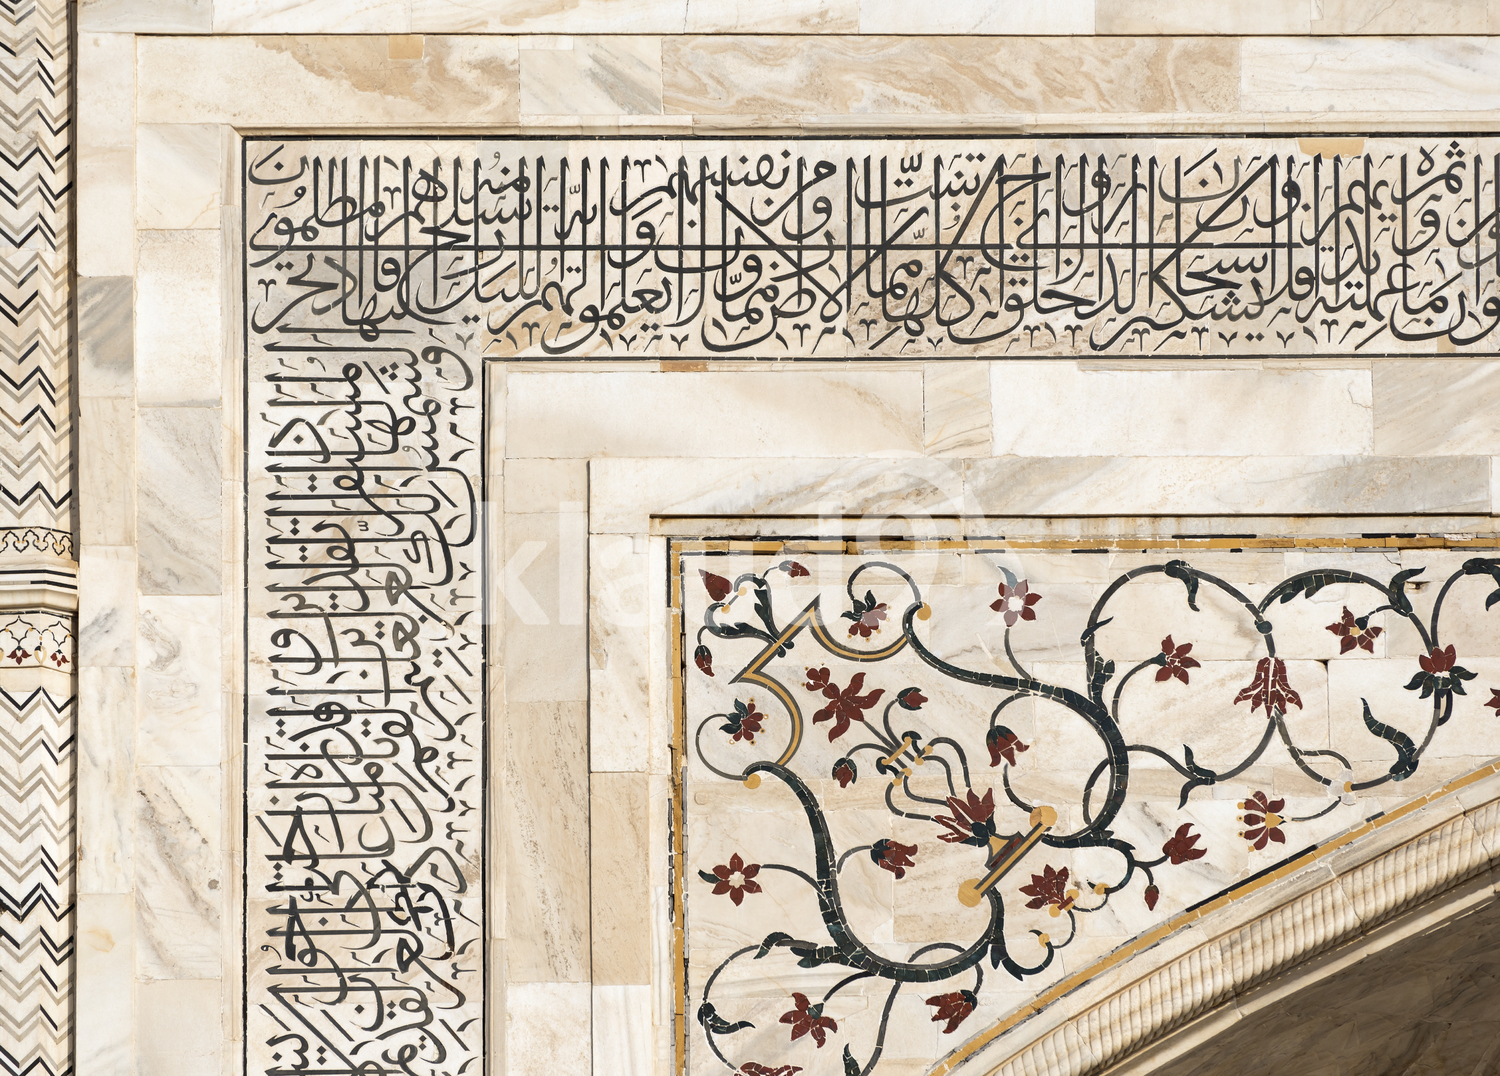 Marble slab with details in Taj Mahal, India